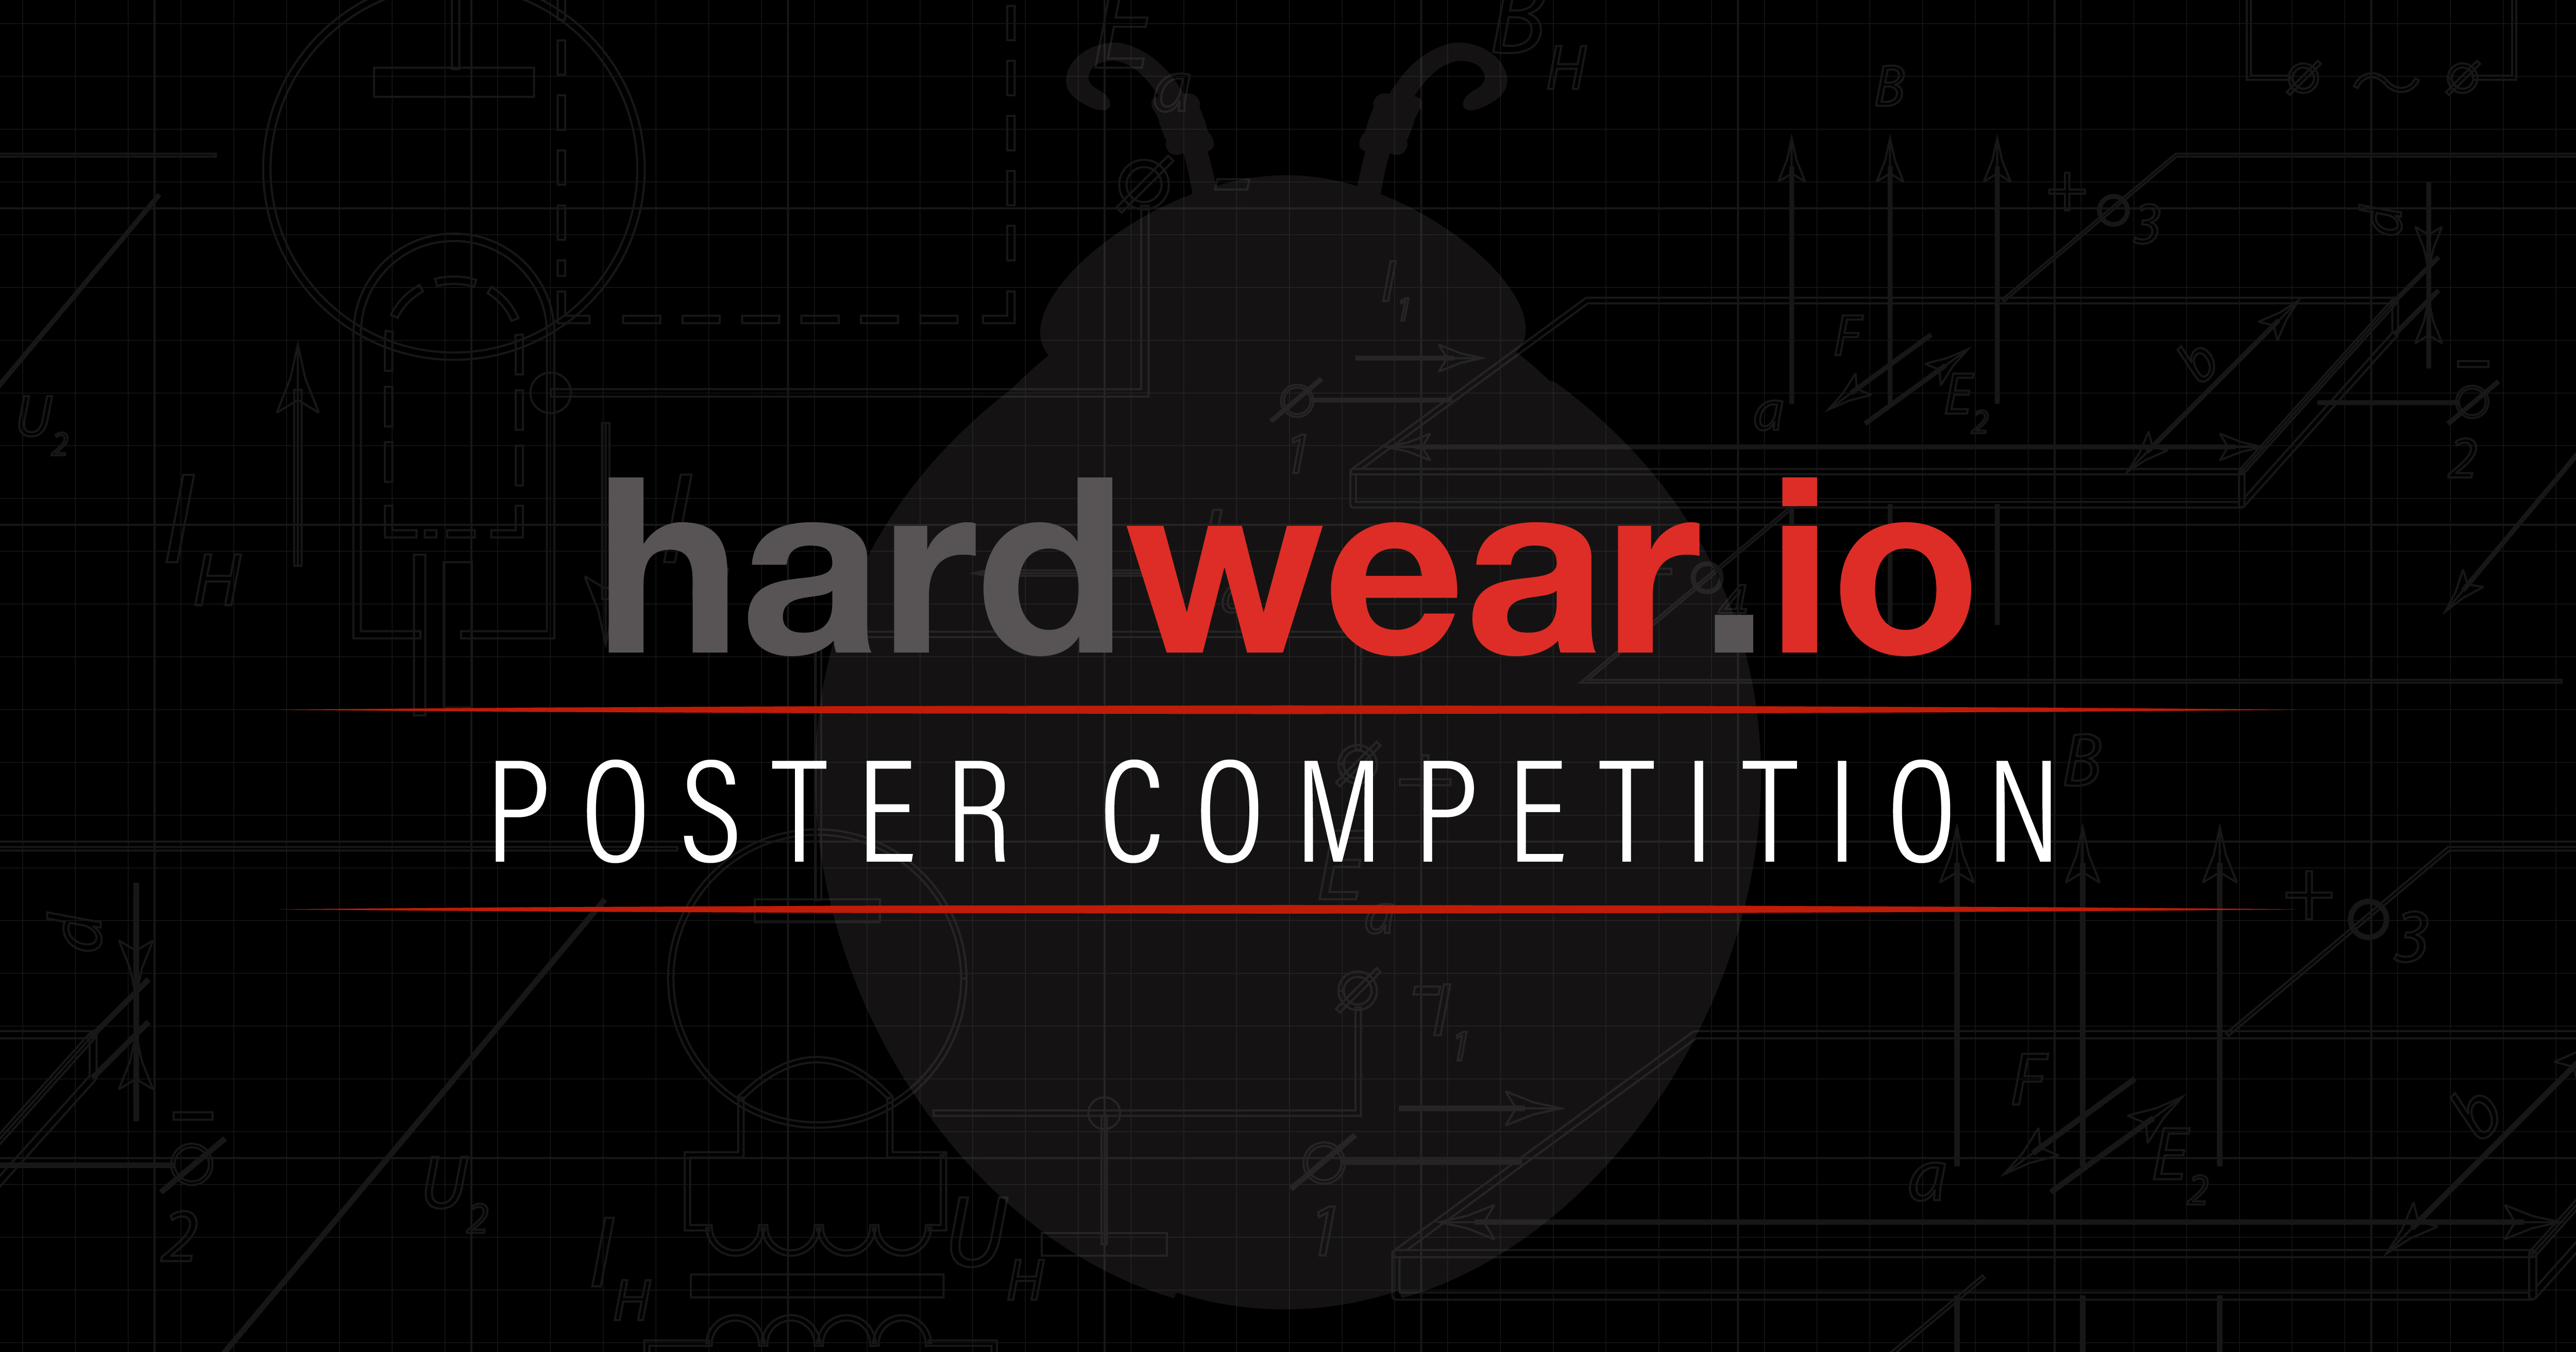 poster competition | hardwear.io netherlands 2020